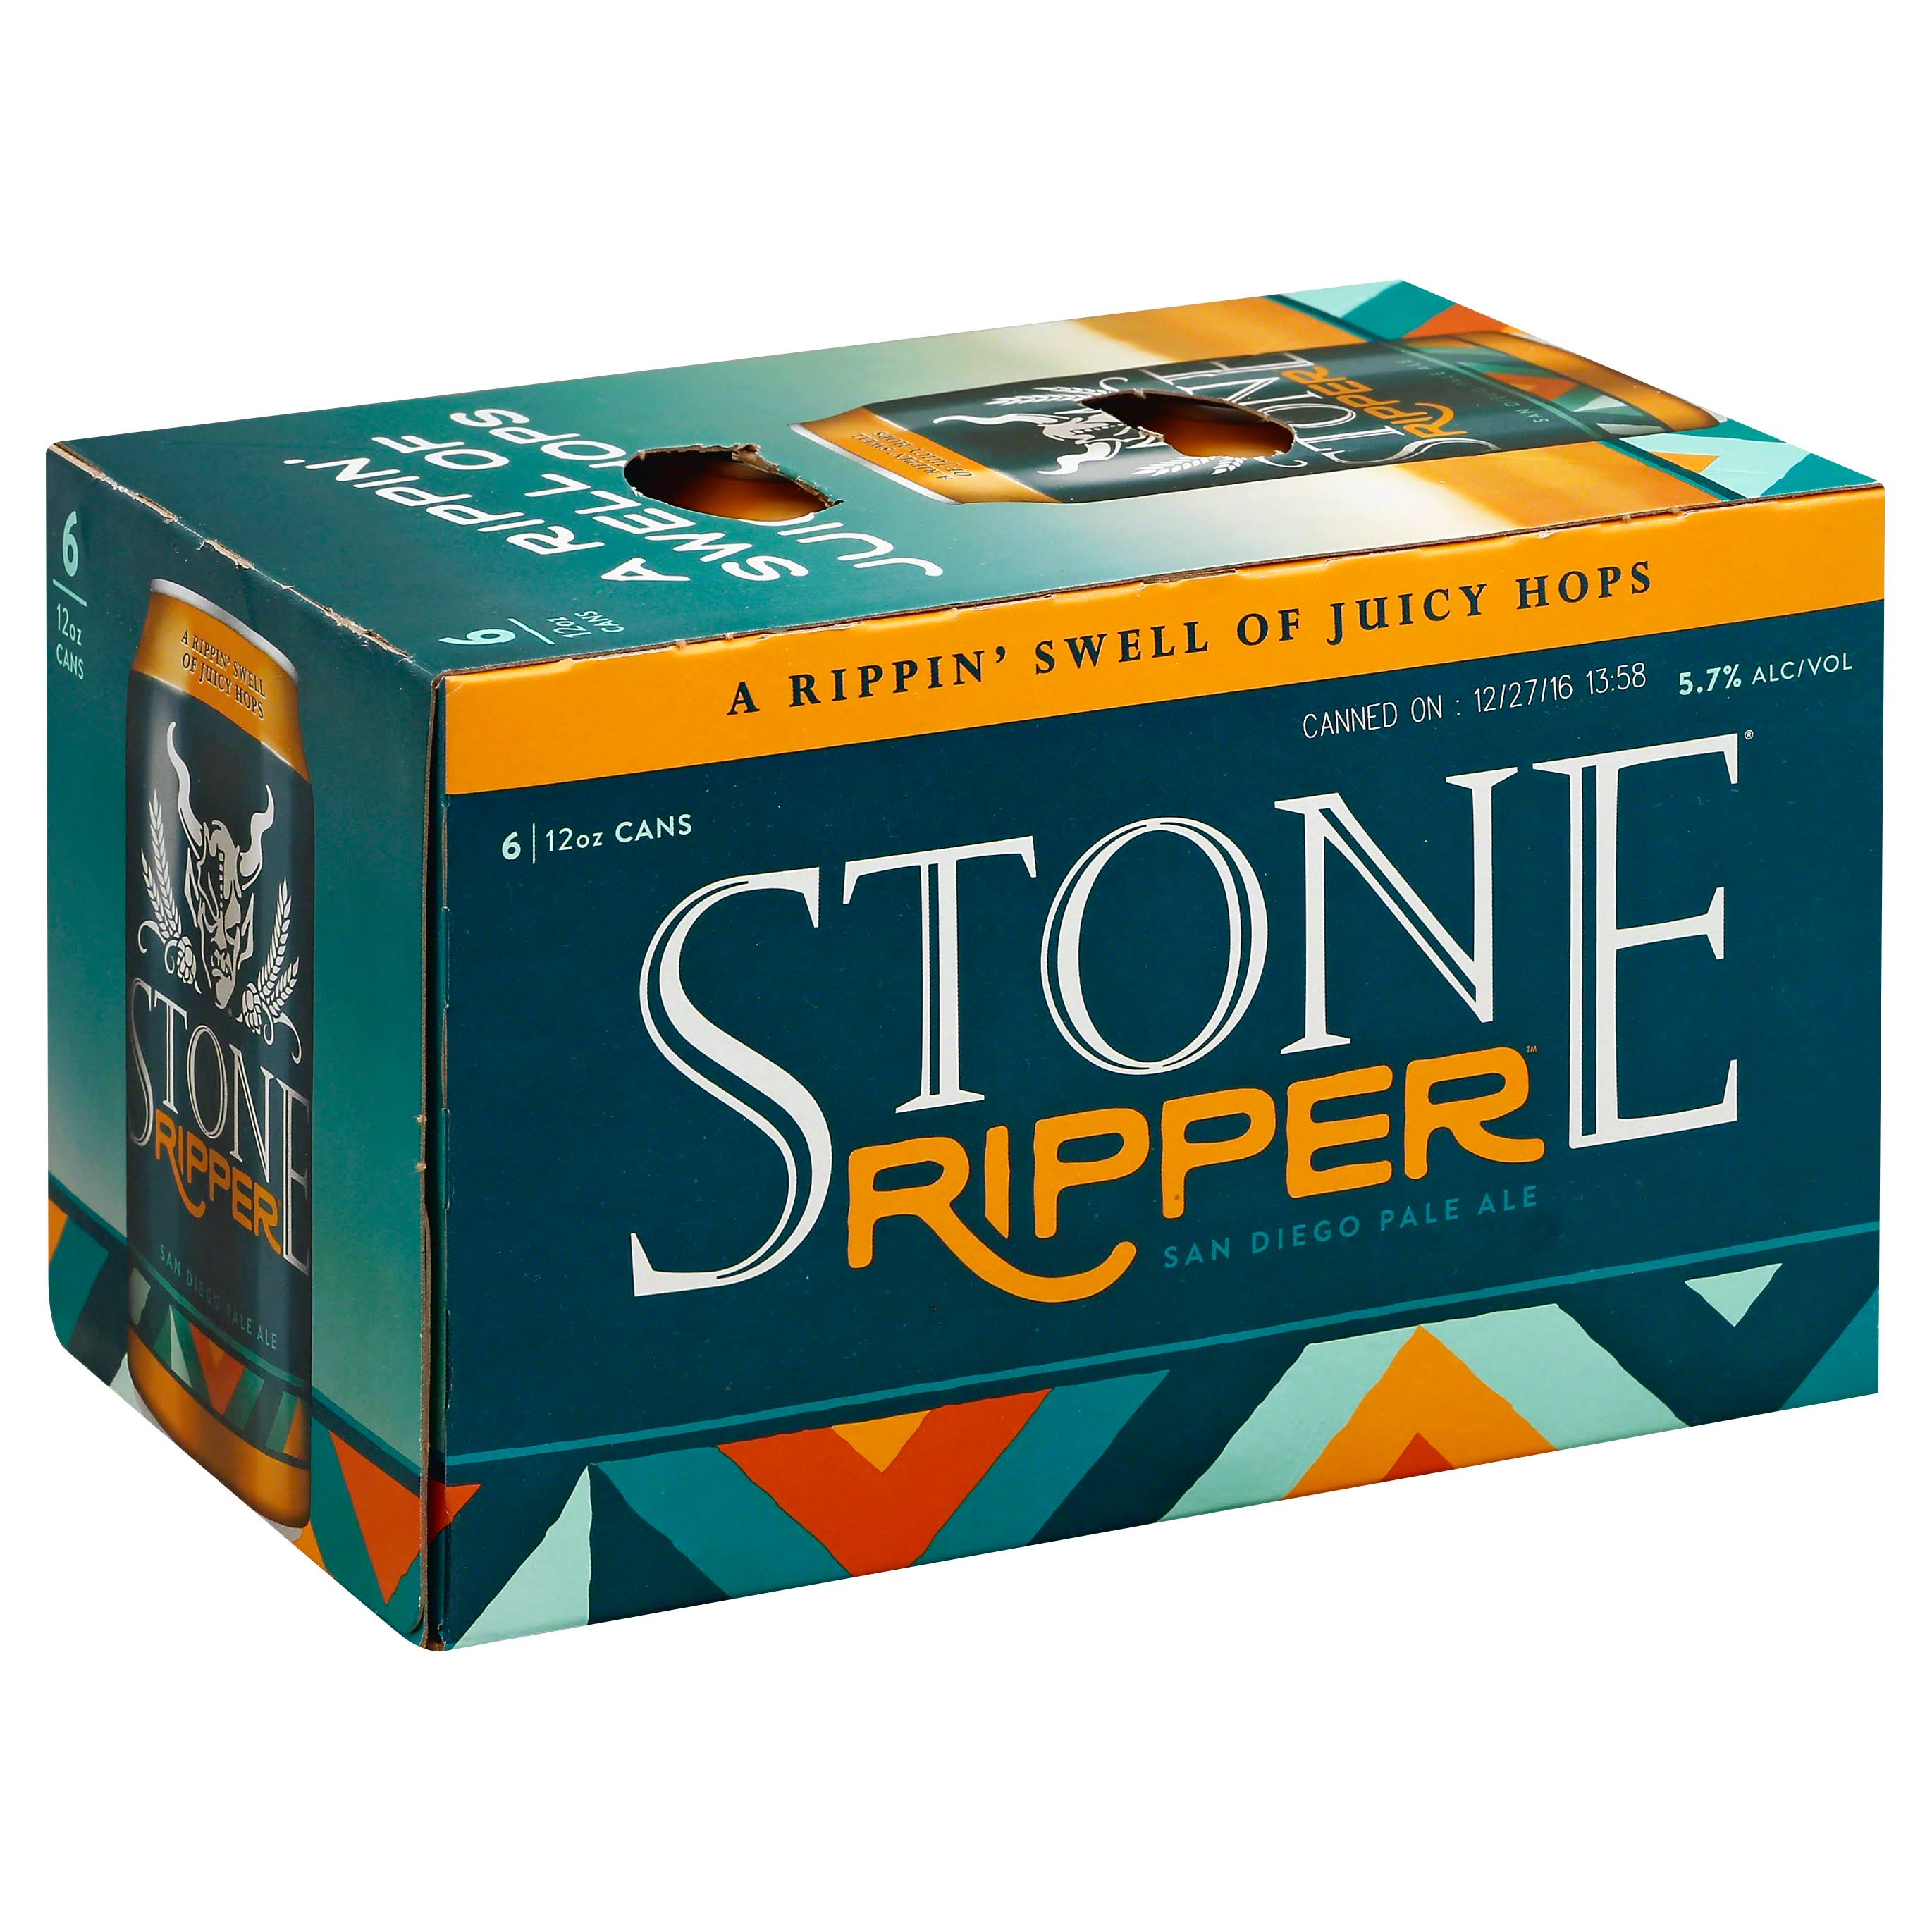 Stone Beer, San Diego Pale Ale, Ripper - 6 pack, 12 fl oz cans